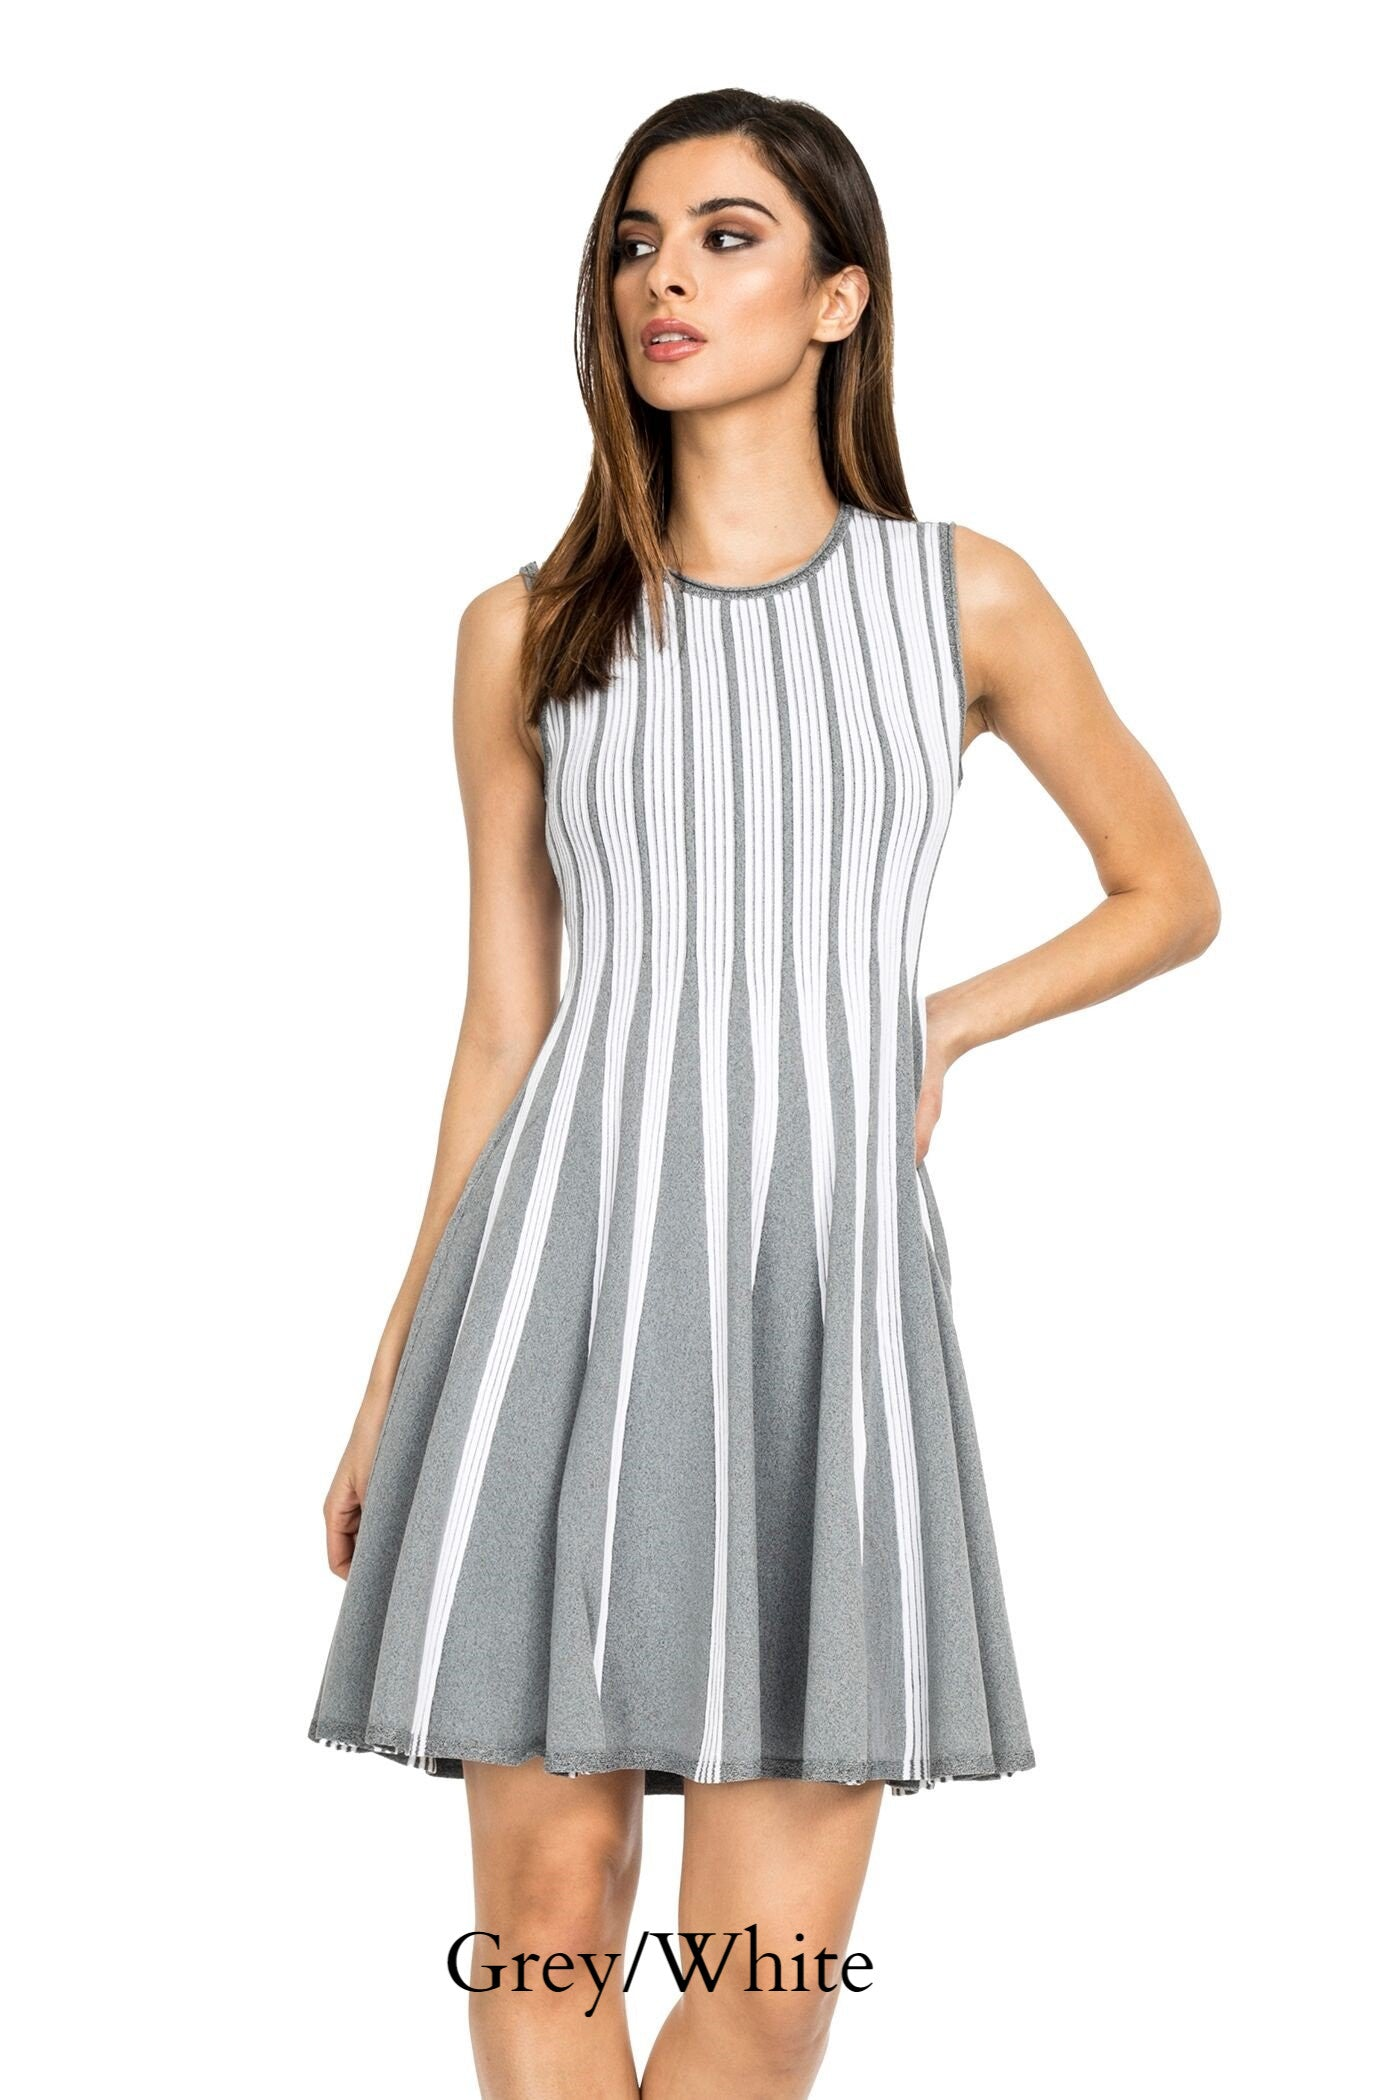 Woman wearing grey/white striped knit sleeveless fit-and-flare knee-length dress